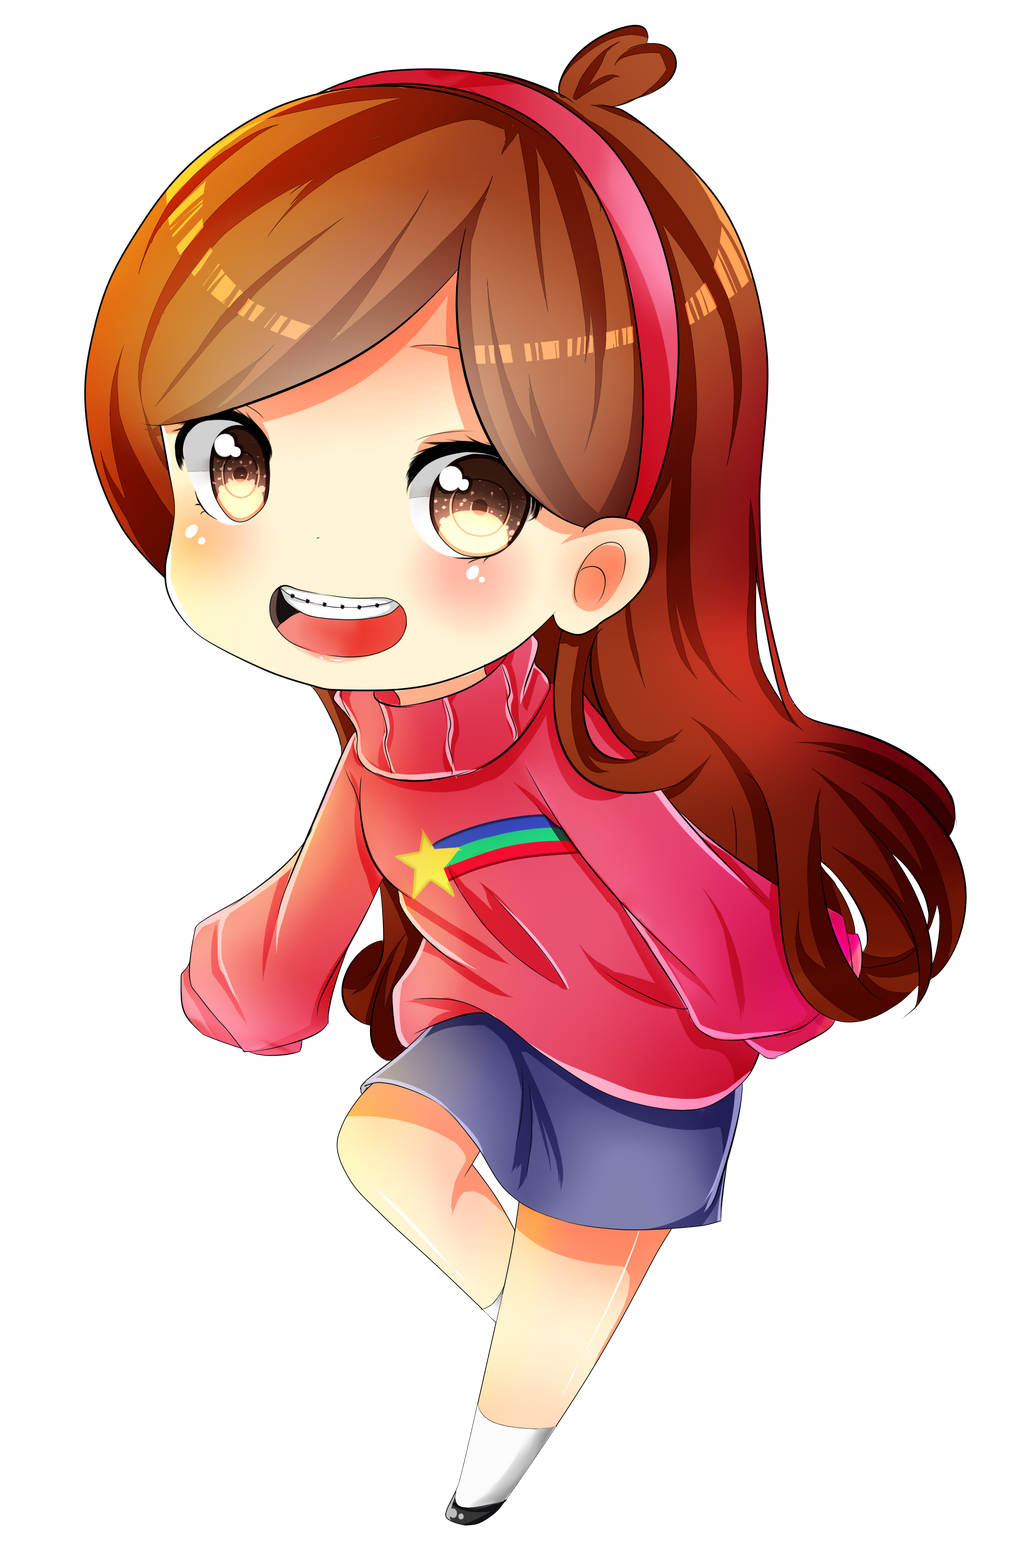 Chibi Mabel Pines By Syoa Kun On Deviantart